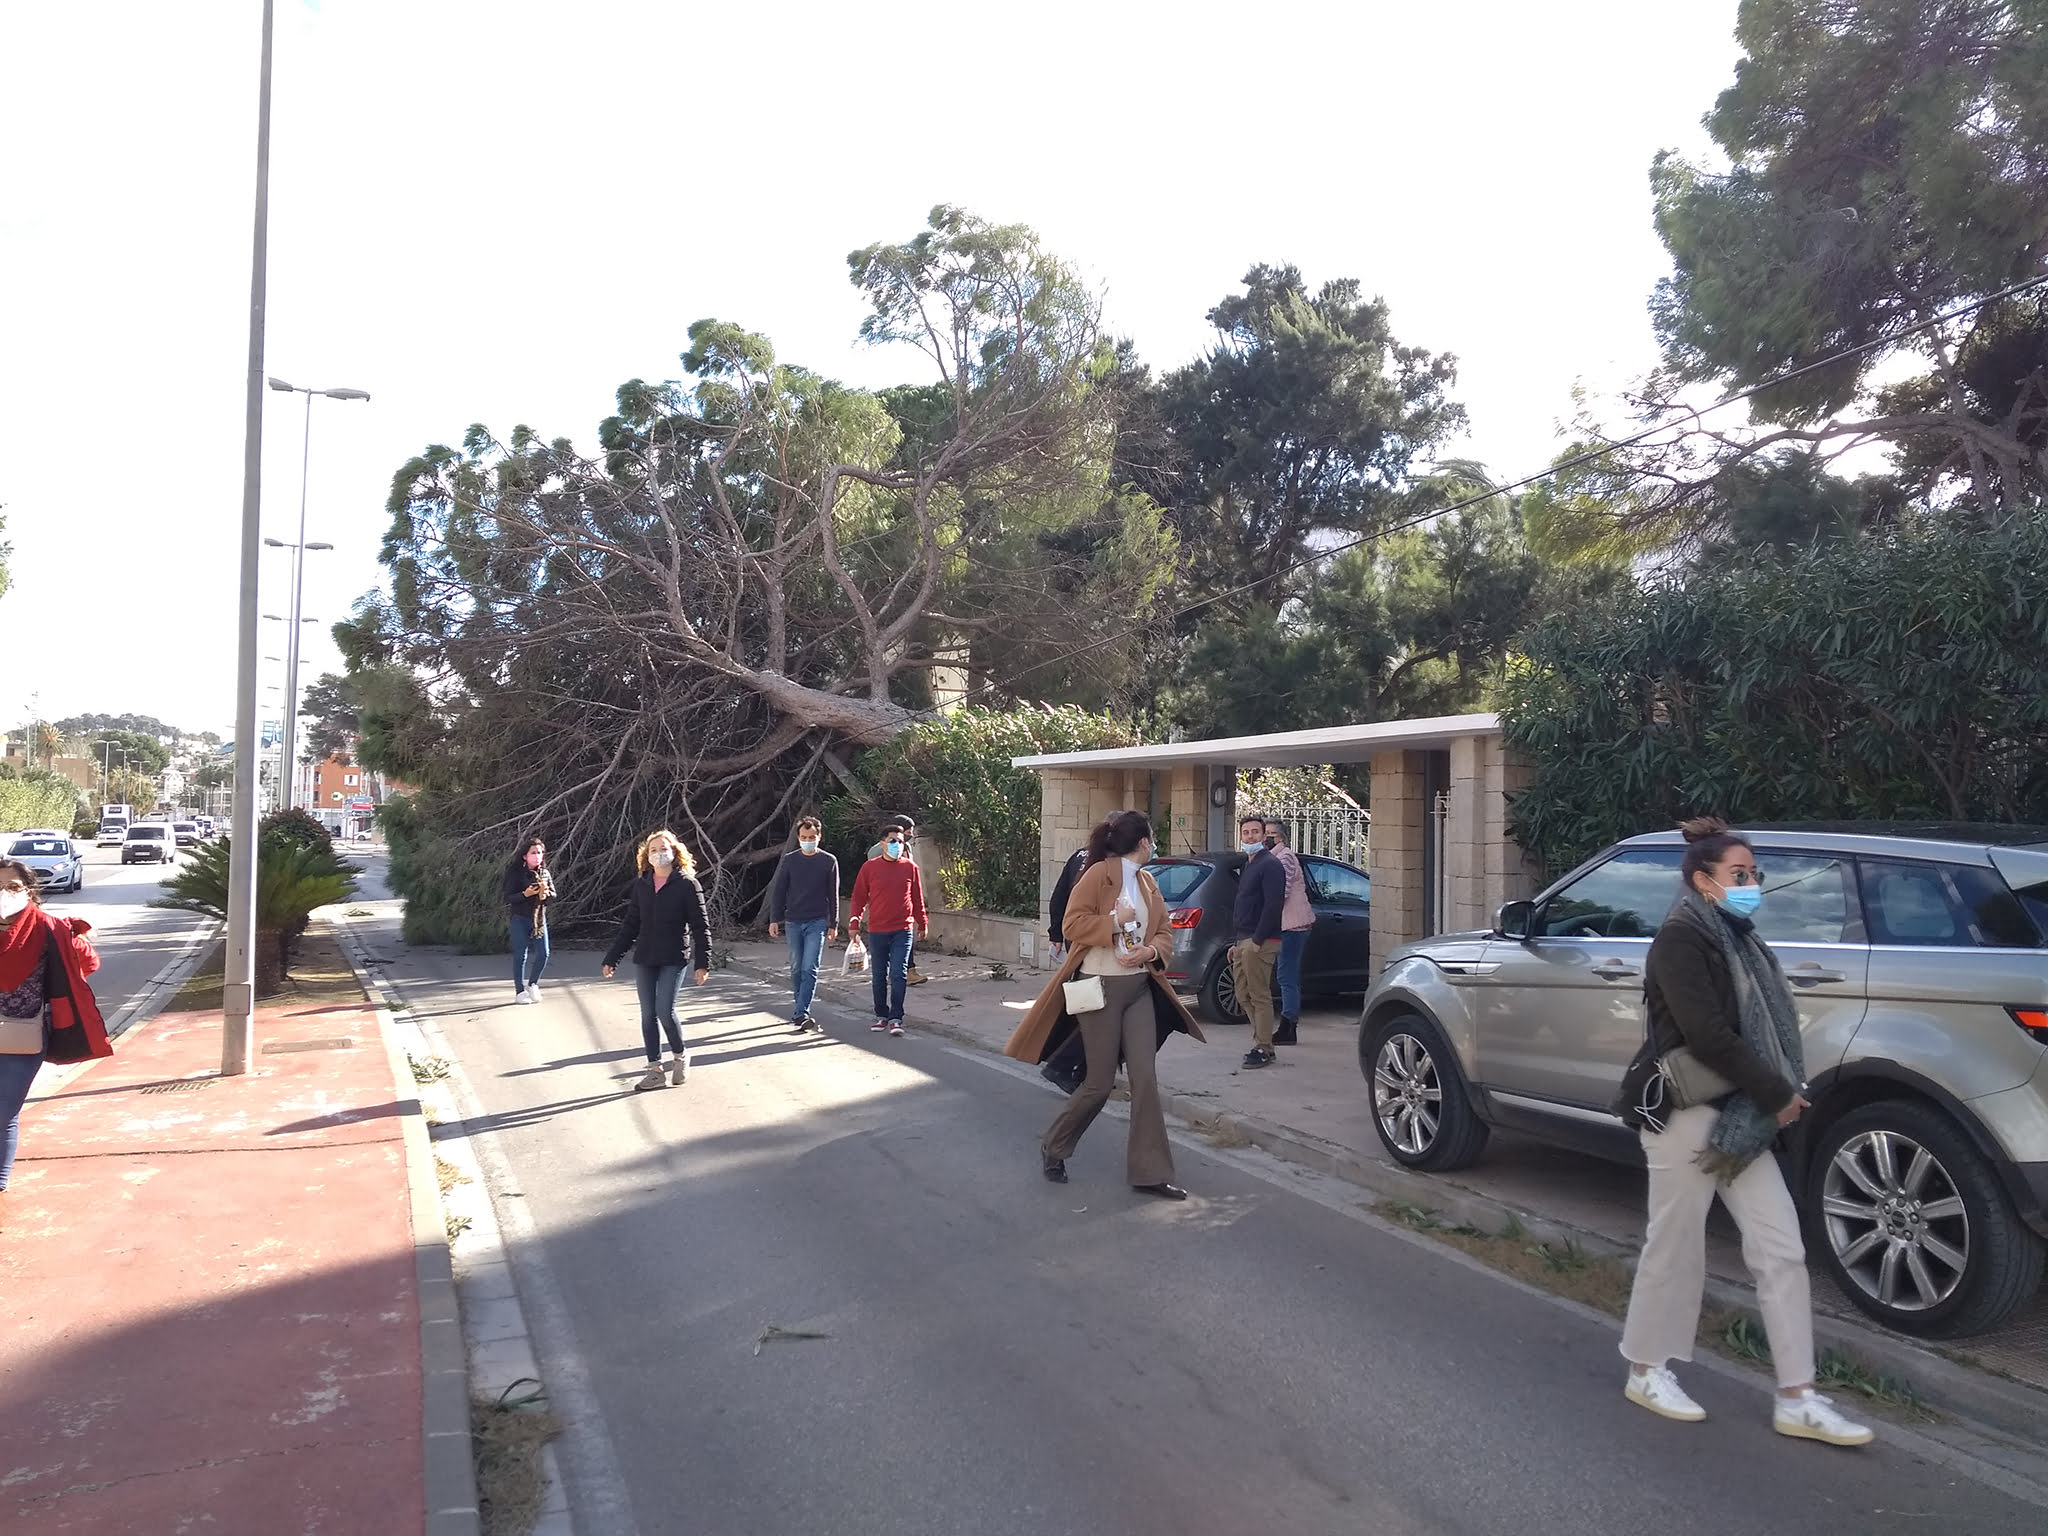 Traffic closed in front of the Nautico due to the fall of a tree